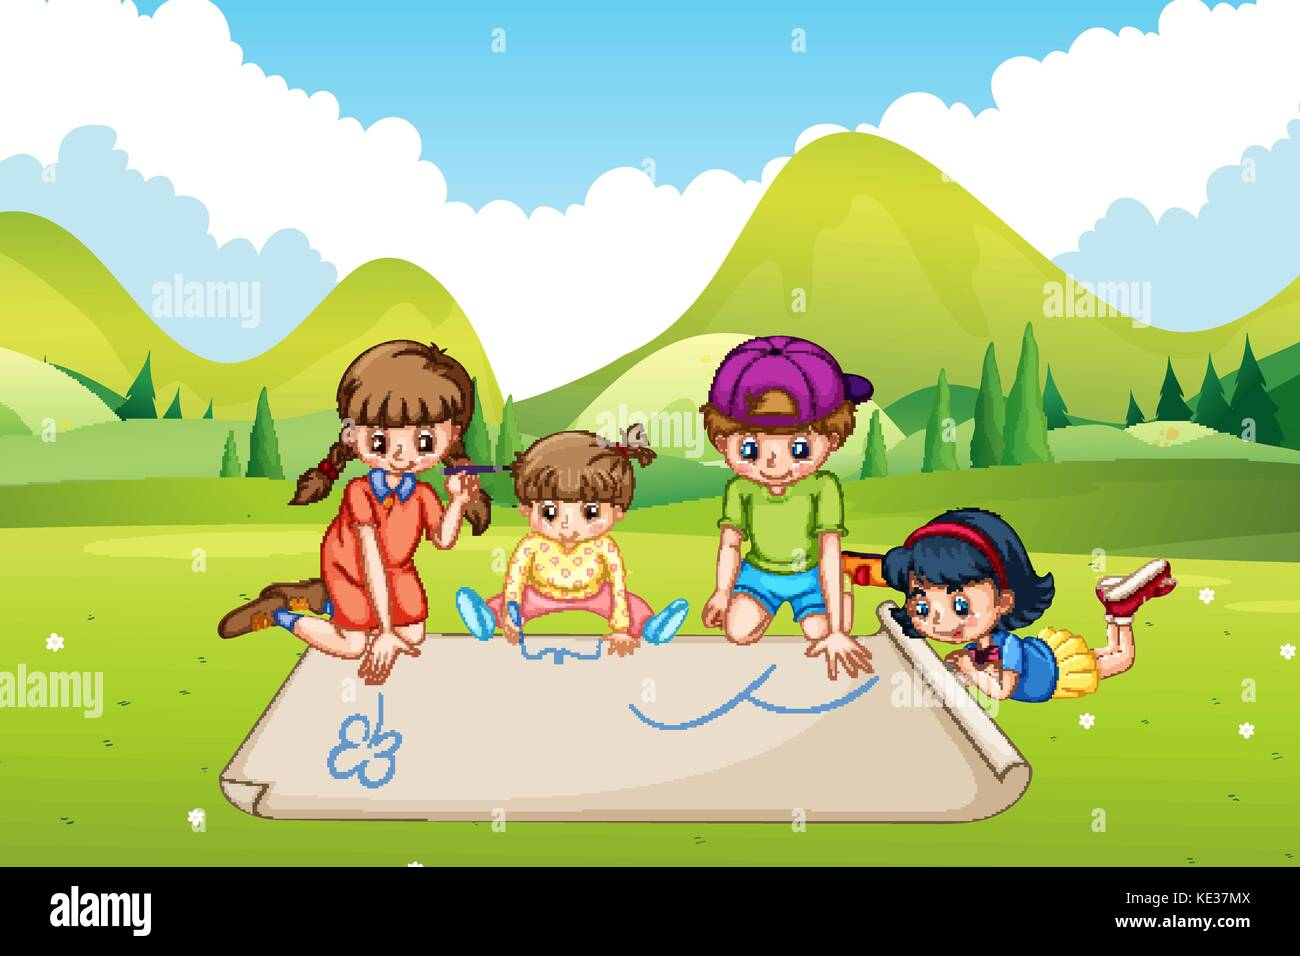 Children drawing on paper in the park illustration Stock Vector